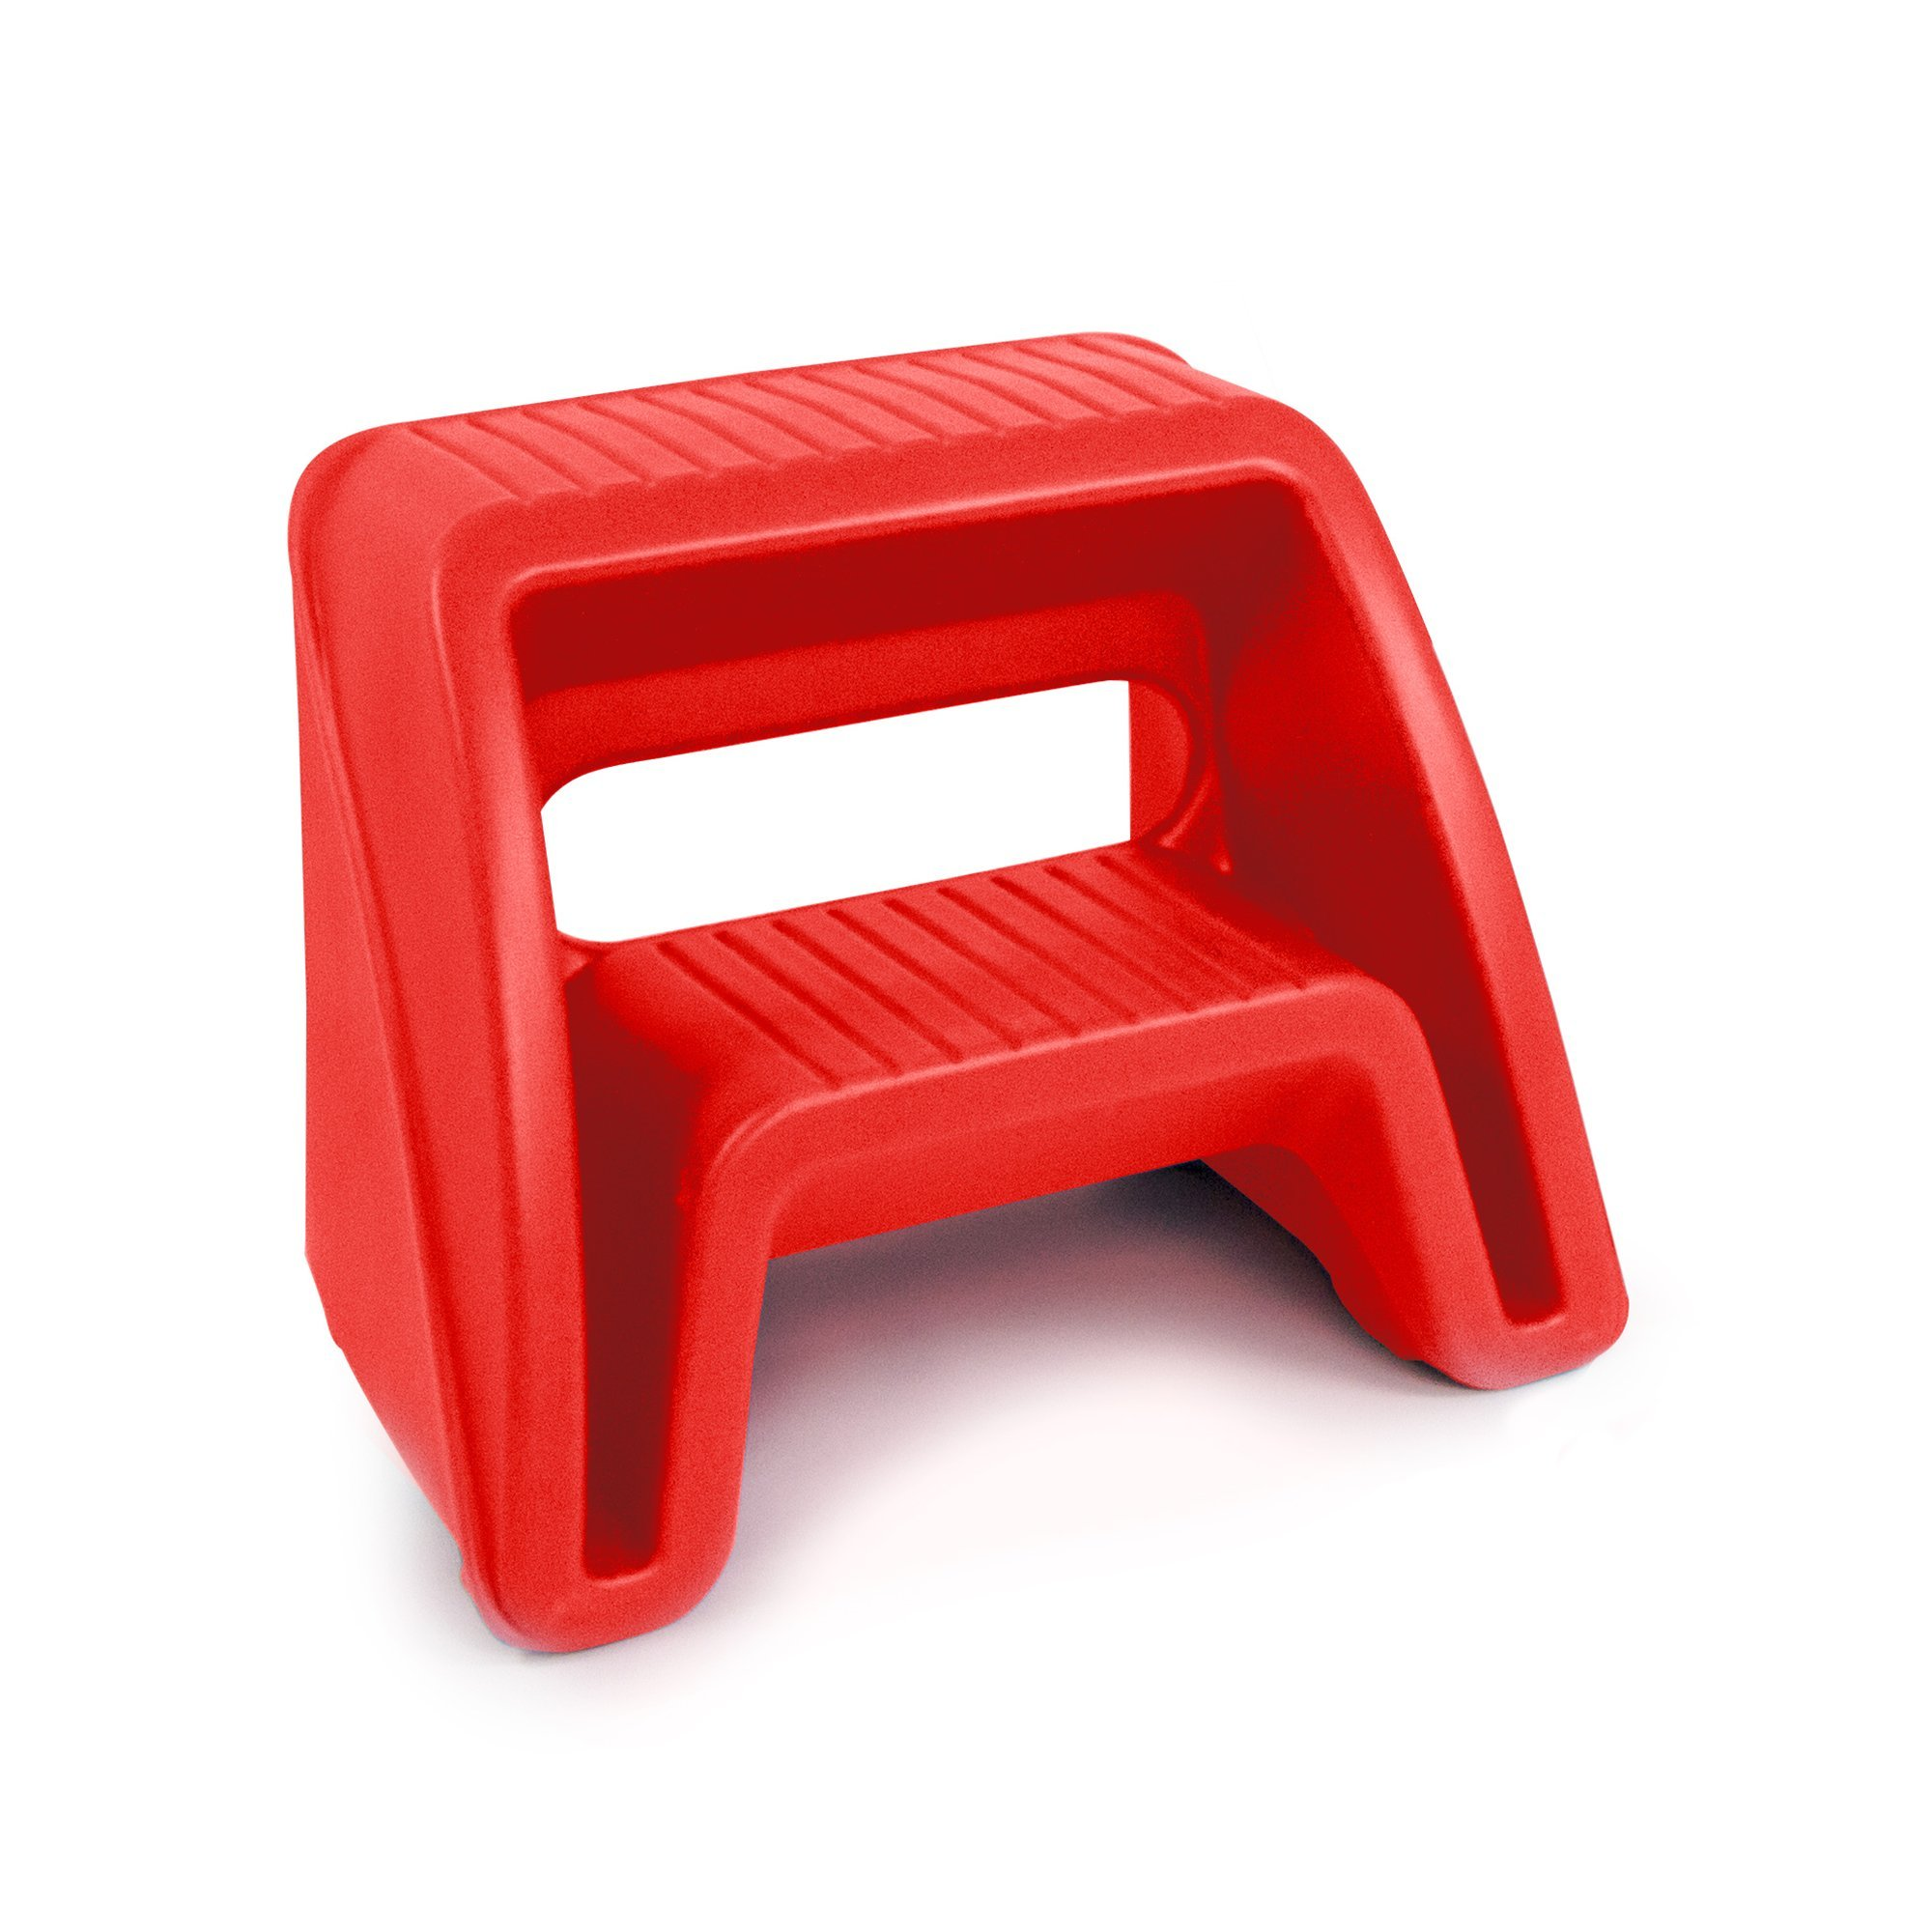 Simplay3 Handy Home 2 Step Plastic Stool, 16'' Top Step